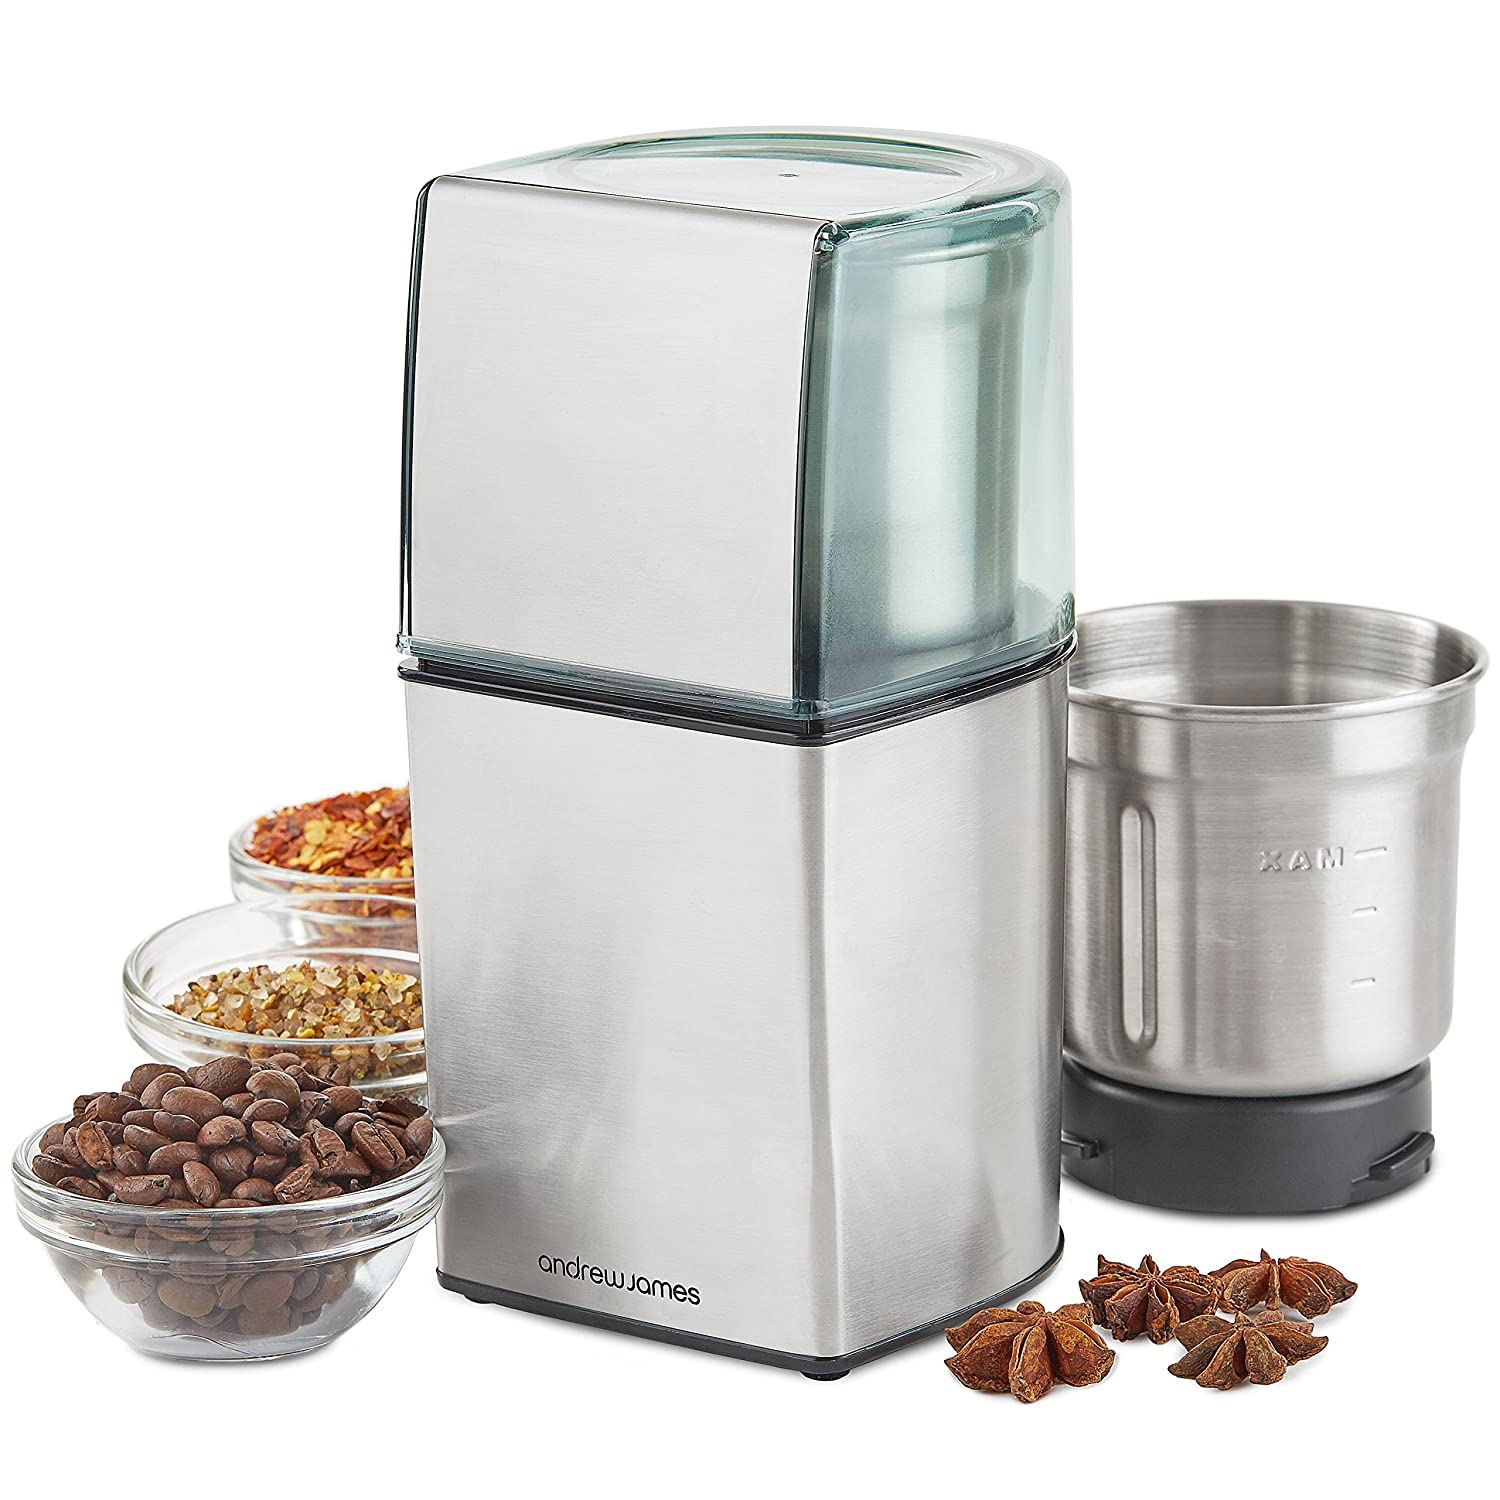 Andrew James Electric Coffee Grinder Also For Nut and Spice Grinding - Wet and Dry Ingredients - 200W